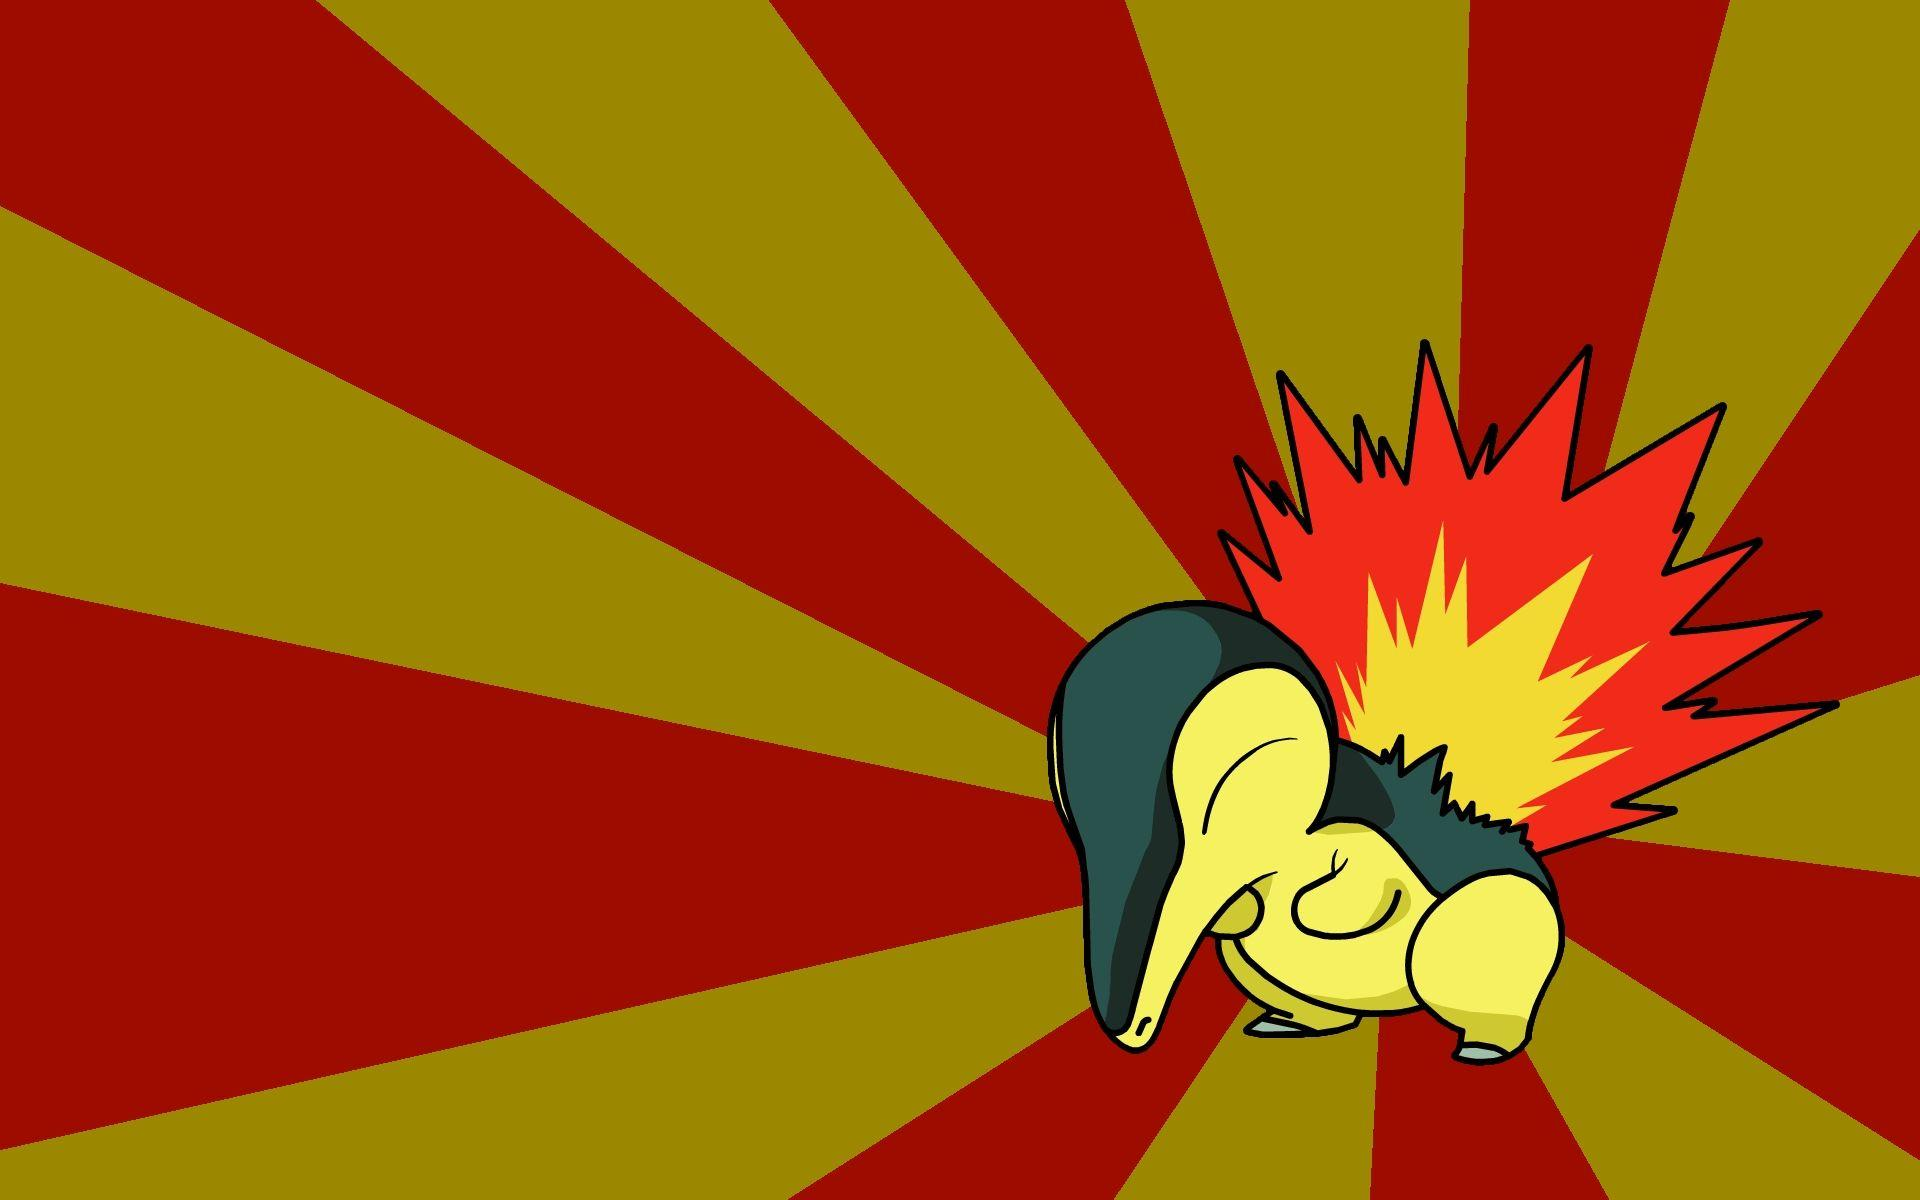 cyndaquil black backgrounds 1920x1080 wallpapers High Quality